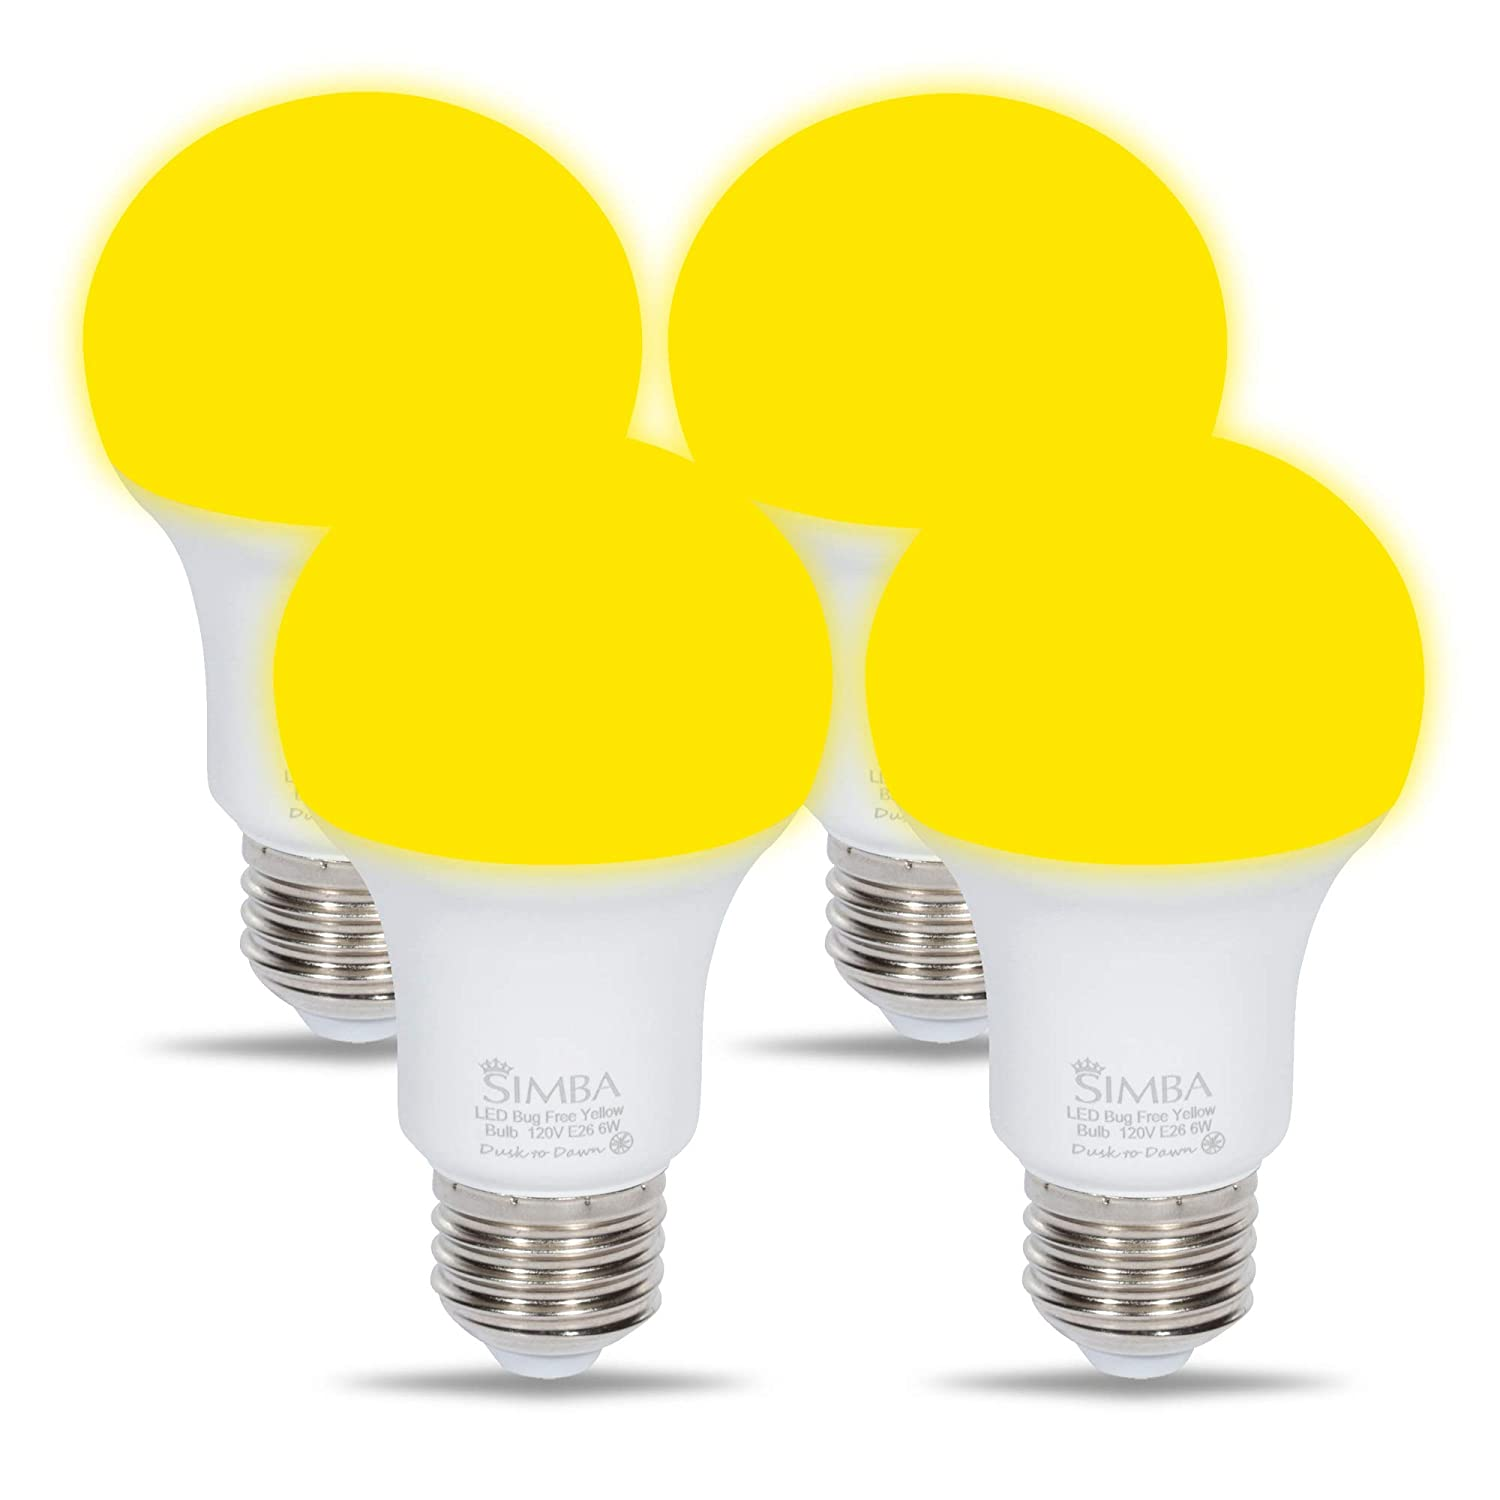 LED Bug Repelling Yellow Bulb 6W 40W Equivalent by Simba Lighting, Great for Outdoor Porch Light, Night Light, Dusk-to-Dawn Smart Sensor Auto On/Off, Amber Warm 2000K, A19 E26 Medium Base, Pack of 4